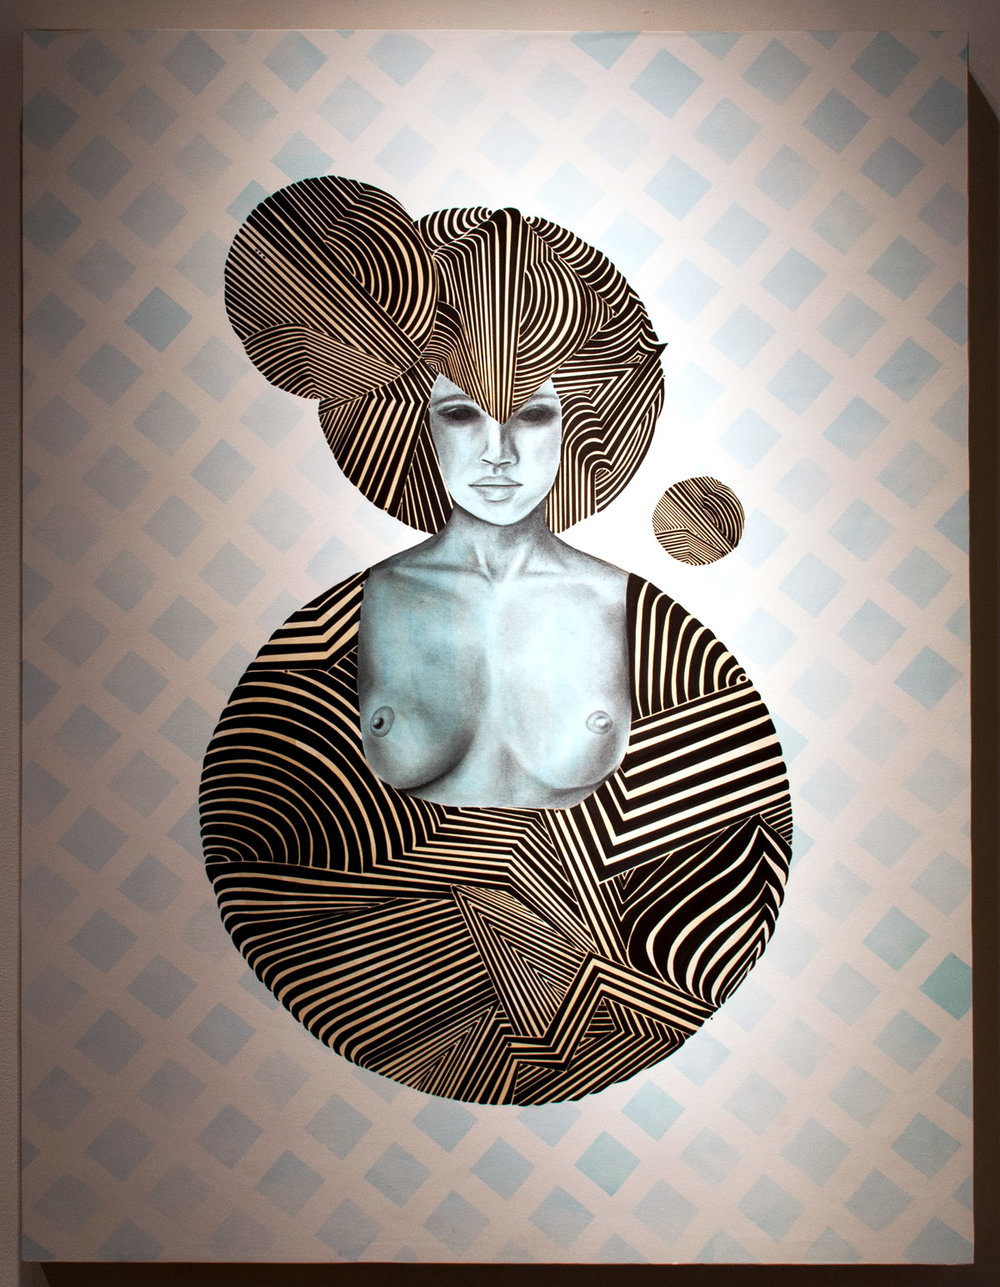 Luna mixed media on paper mounted on wood 48 x 36 inches LBR 036G